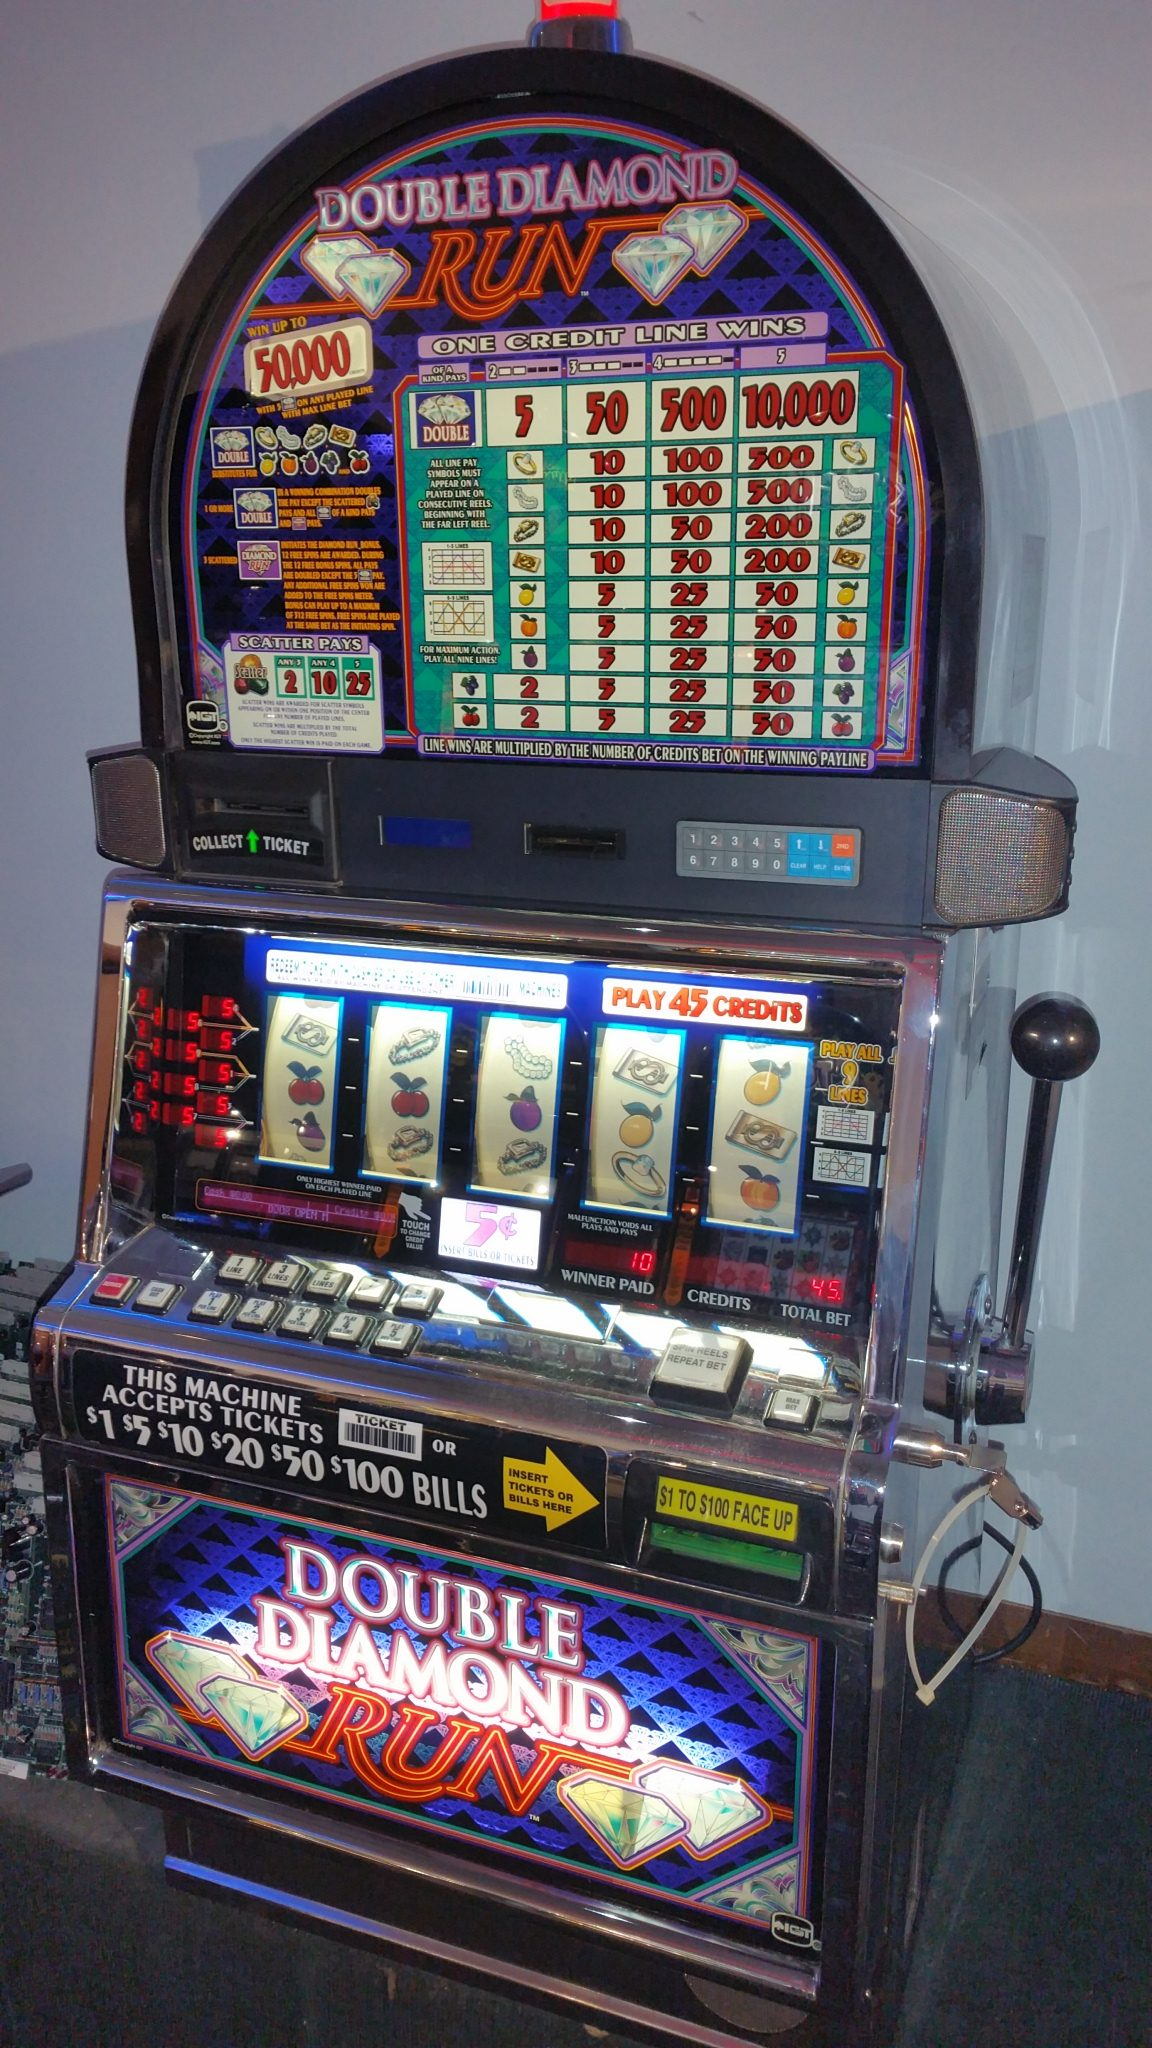 Double diamond run slot machine for sale